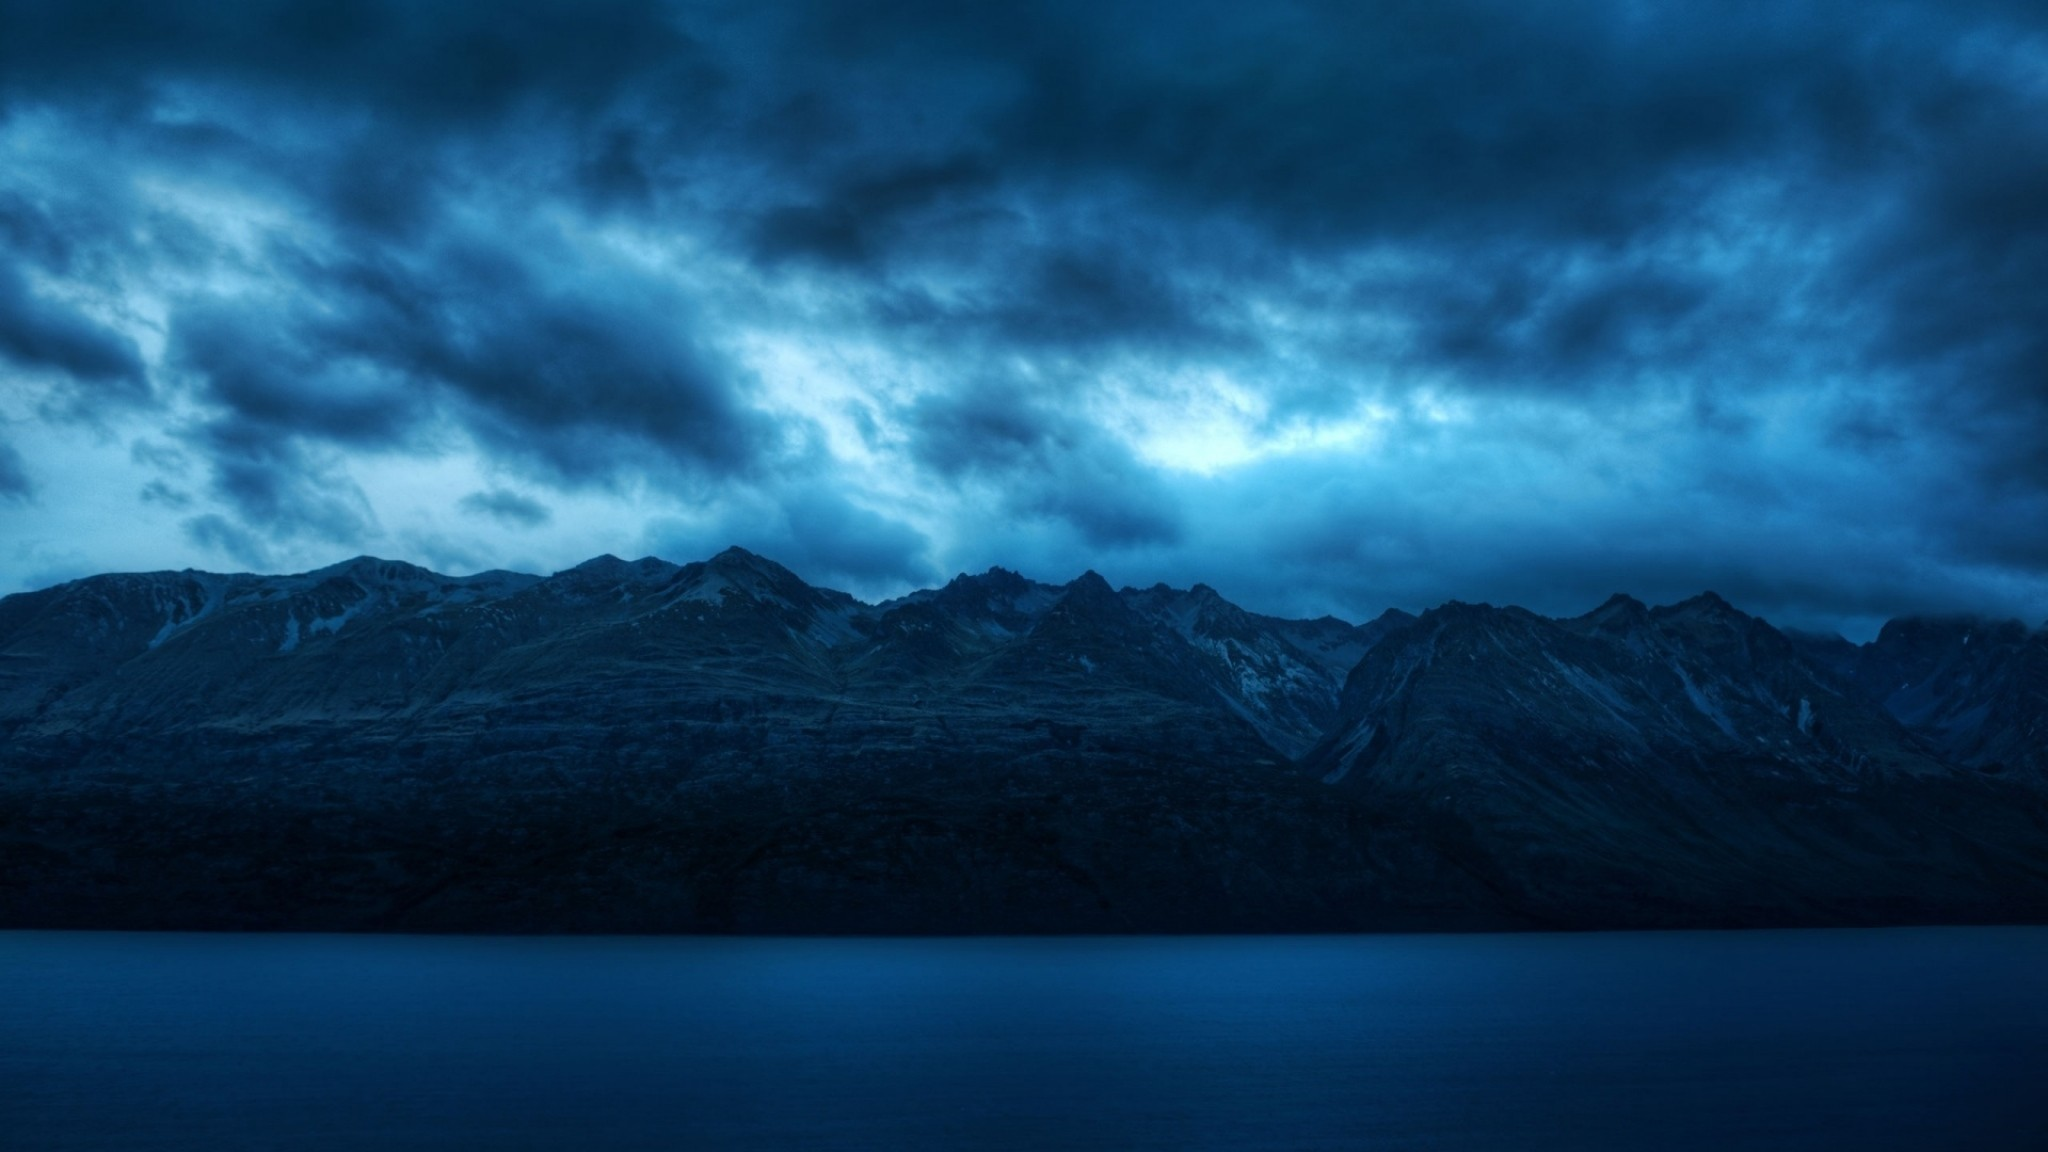 Wallpaper water, blue, mountains, scenery, clouds